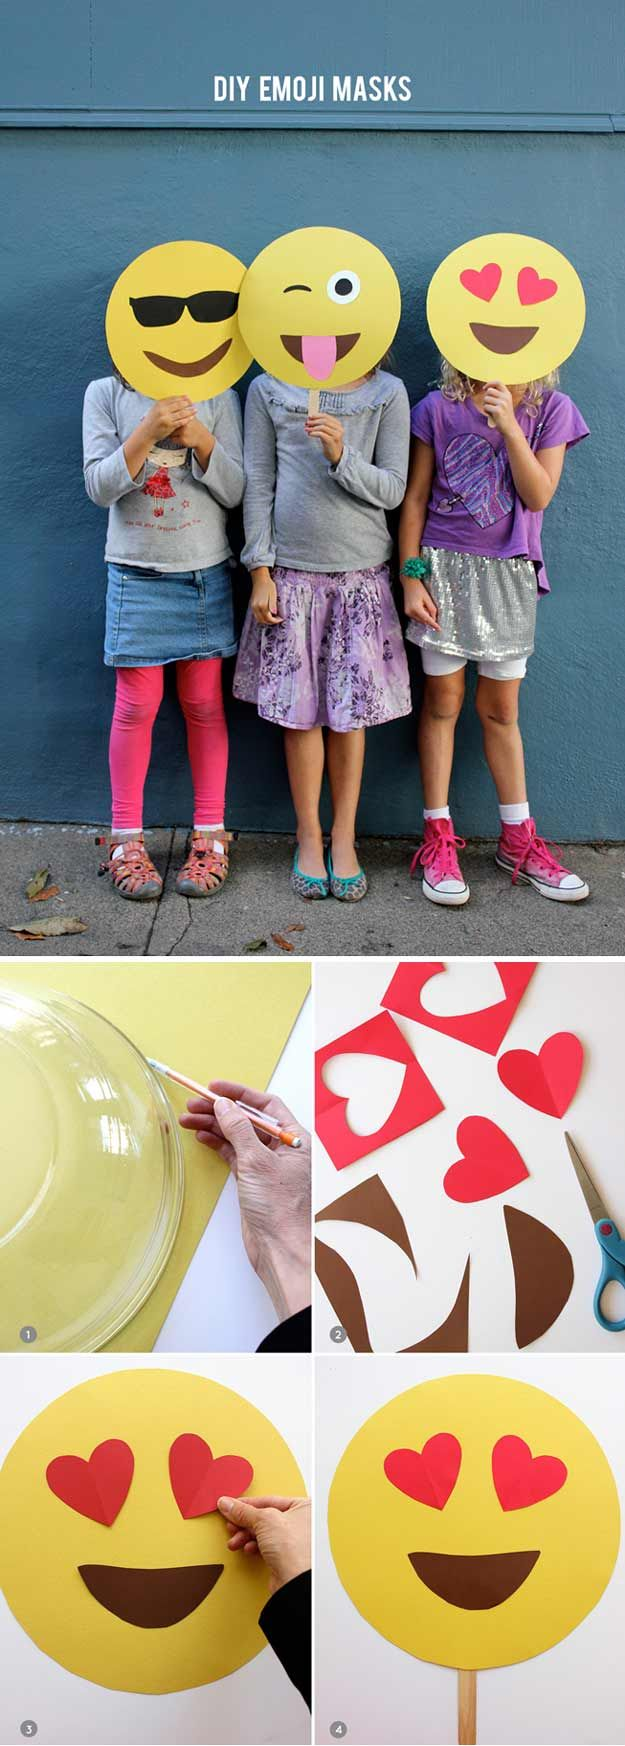 Good Cool Craft Ideas For Kids Part - 9: Cool DIY Photo Booth Props